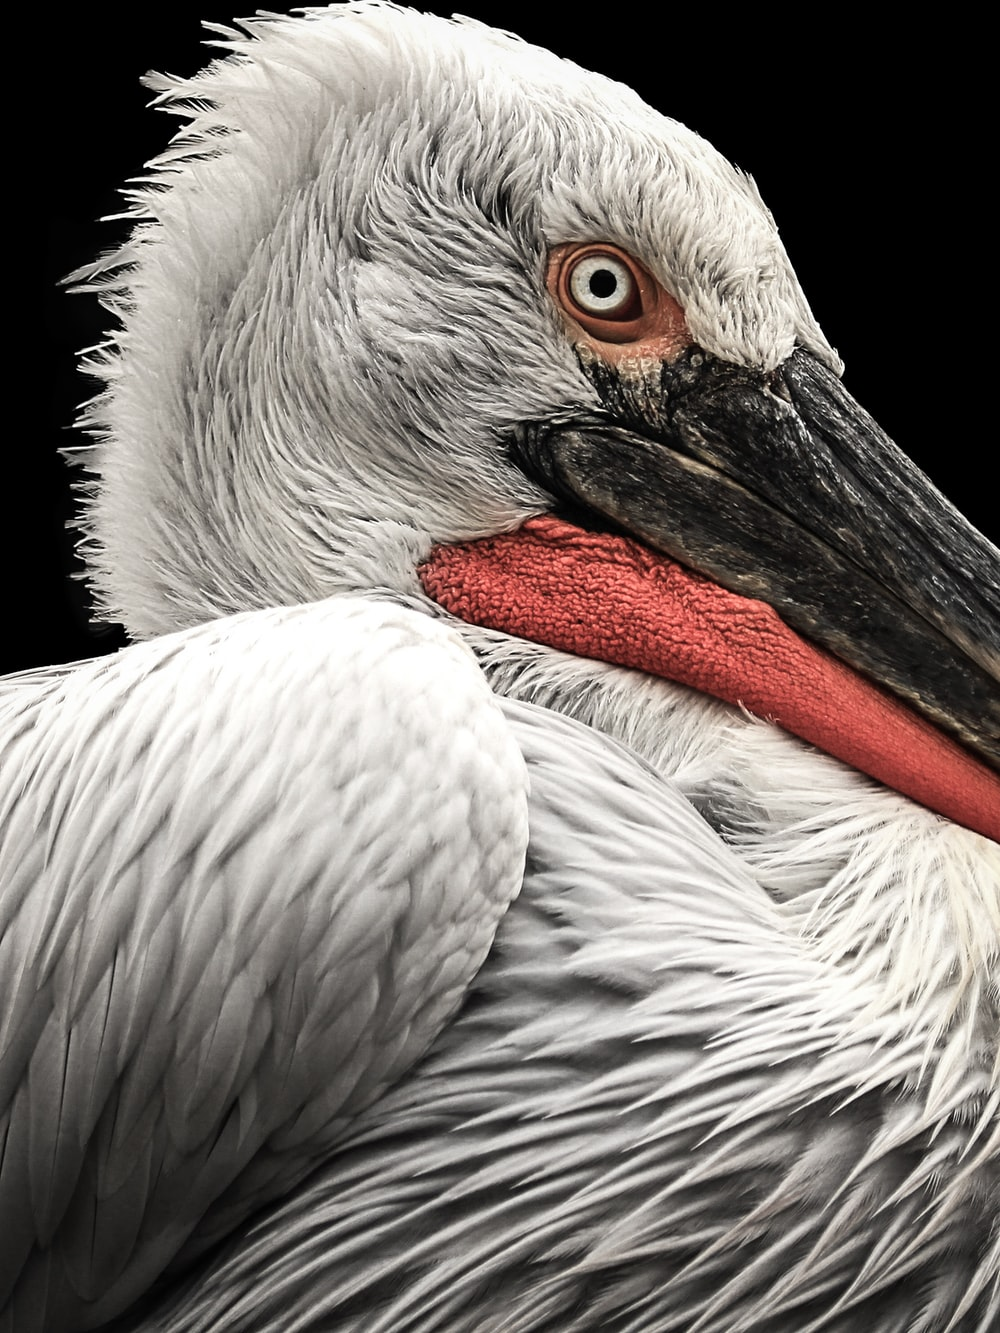 close-up photo of white and red bird